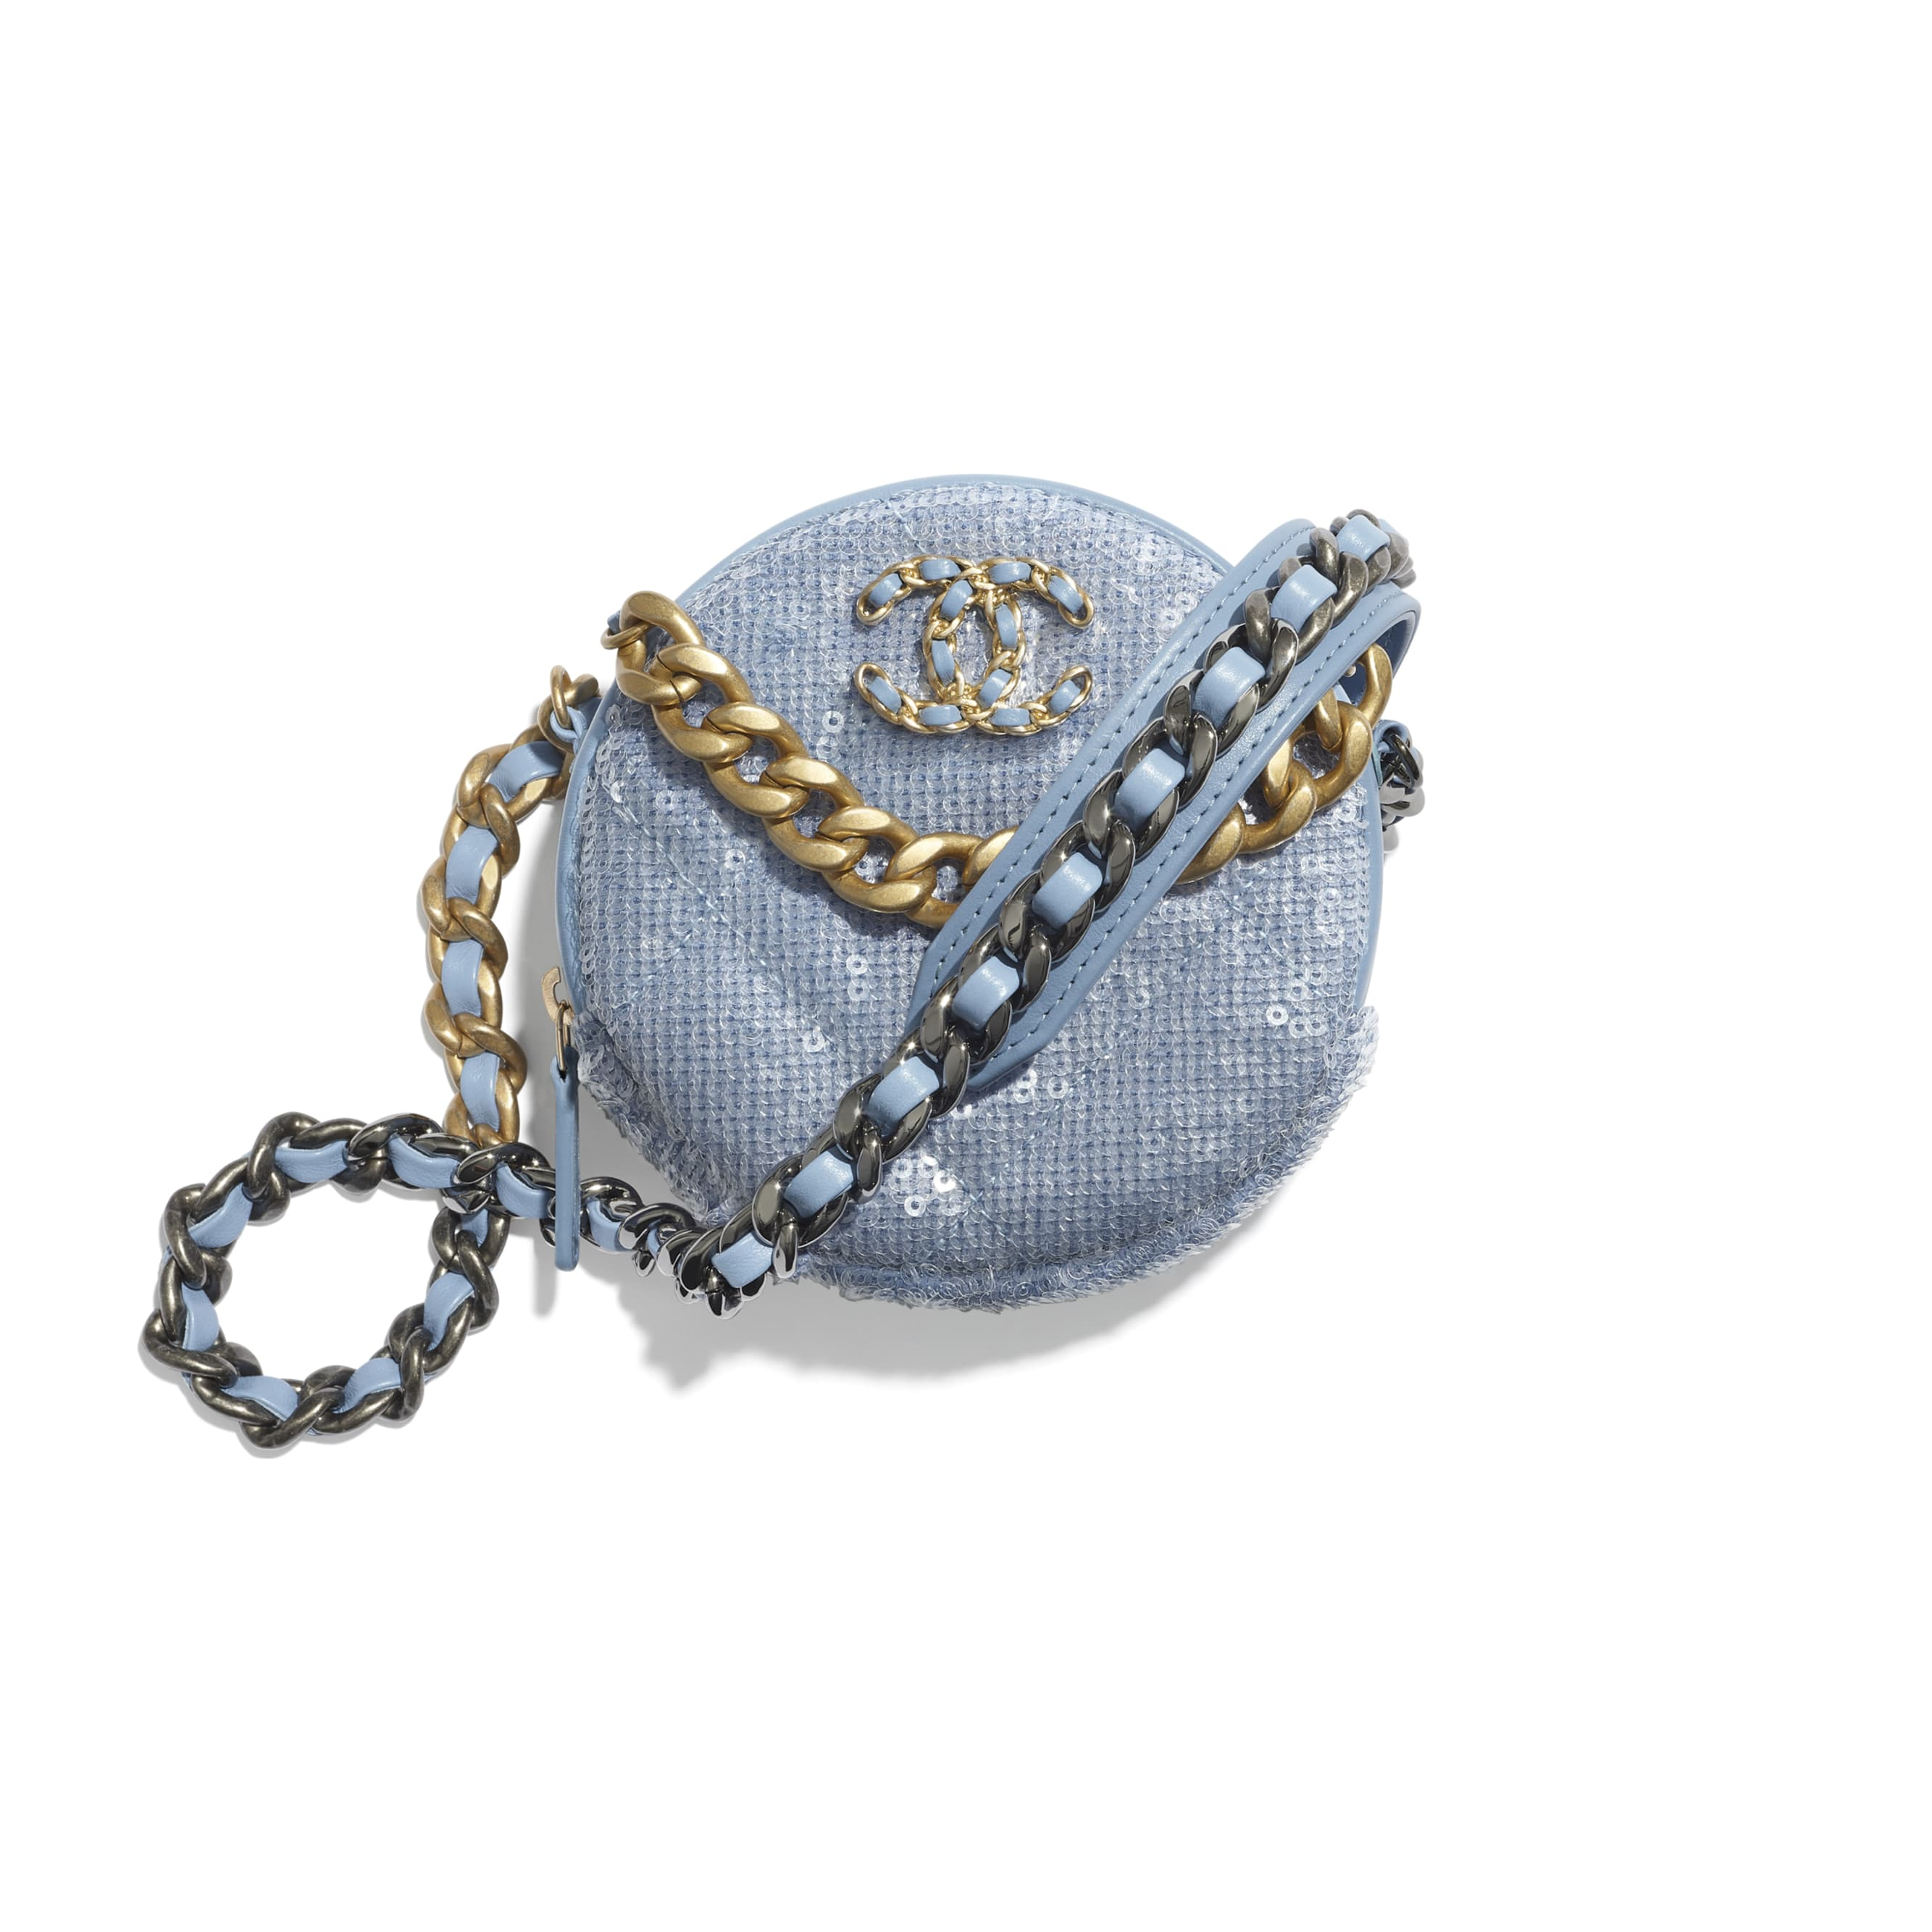 CHANEL 19 Clutch with Chain - Sky Blue - Sequins, calfksin, silver-tone & gold-tone metal - CHANEL - Default view - see standard sized version